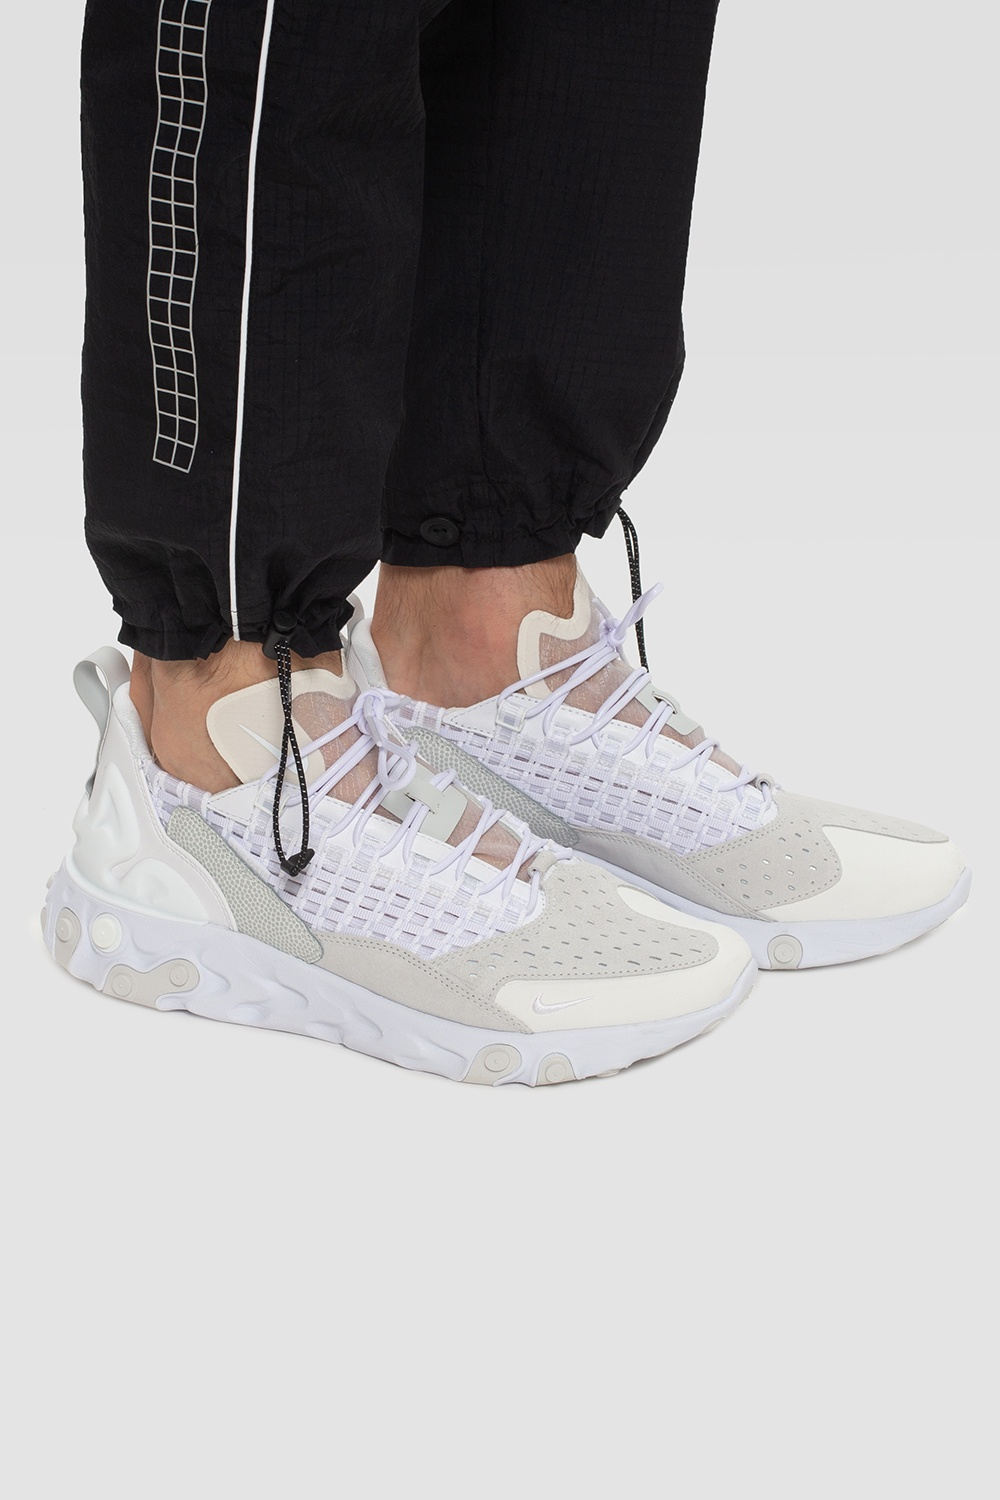 Nike 'React Sertu' sneakers